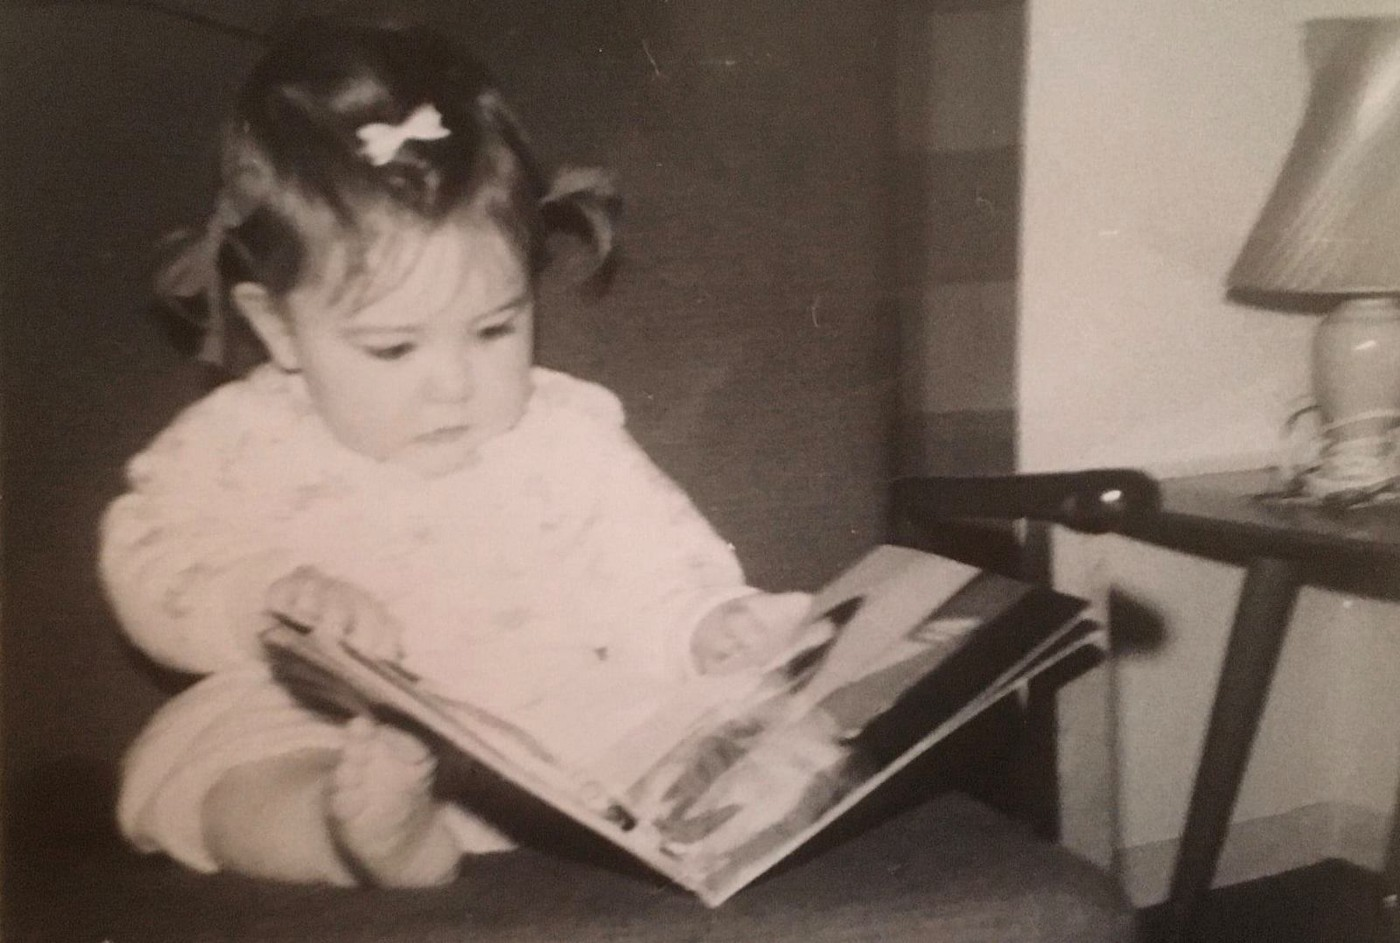 Image of author as a baby reading a book